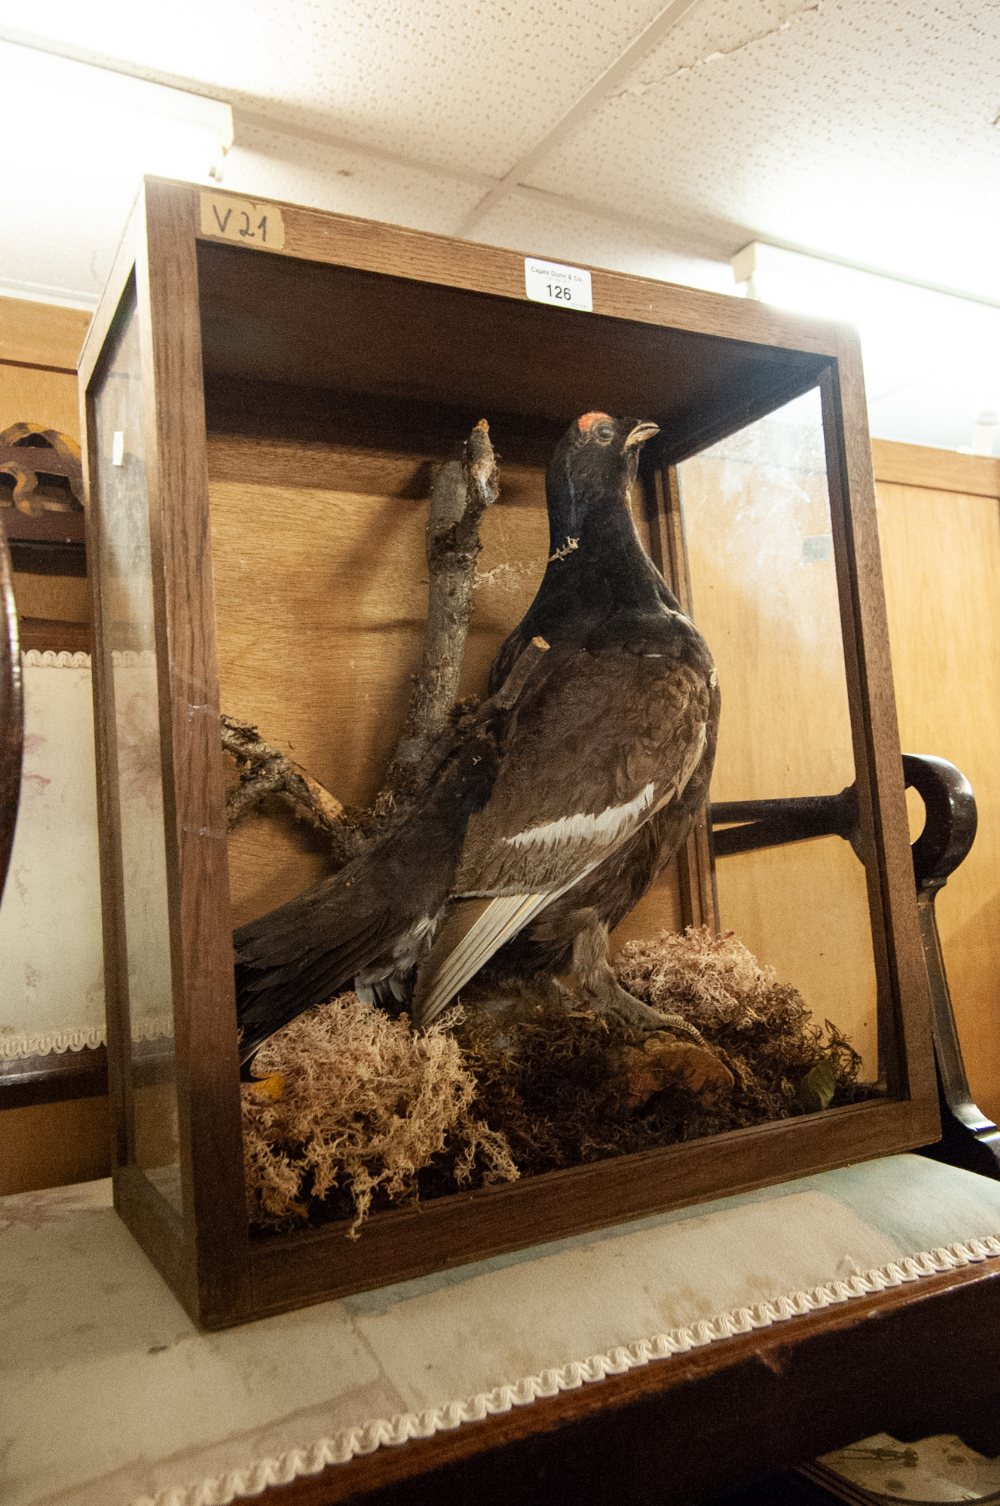 Lot 126 - A SMALL TAXIDERMIC SPECIMEN OF A BIRD